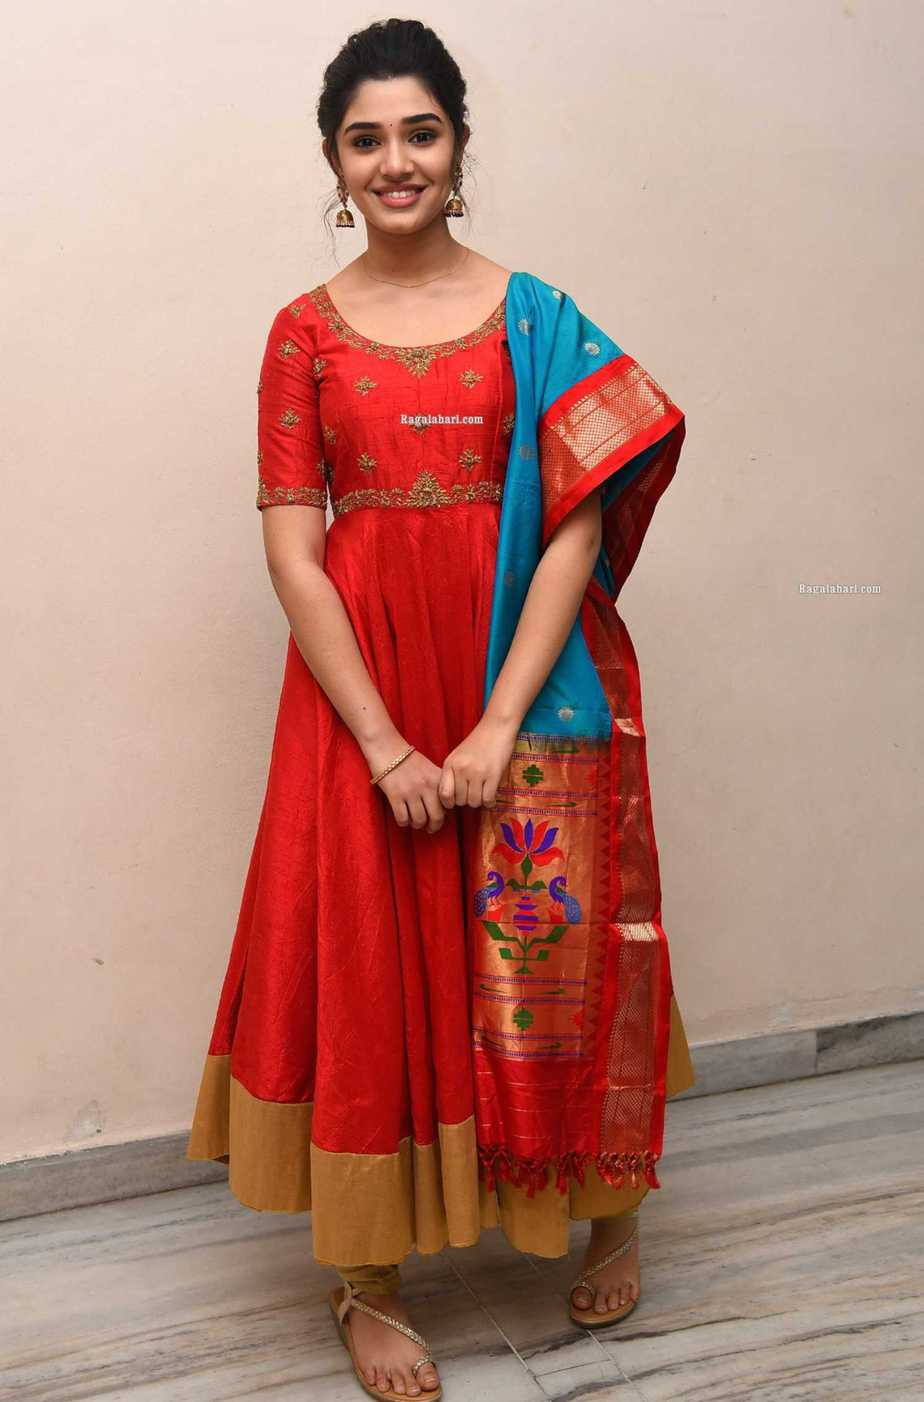 Krithi Shetty in a red anarkali set for uppena success meet3.1